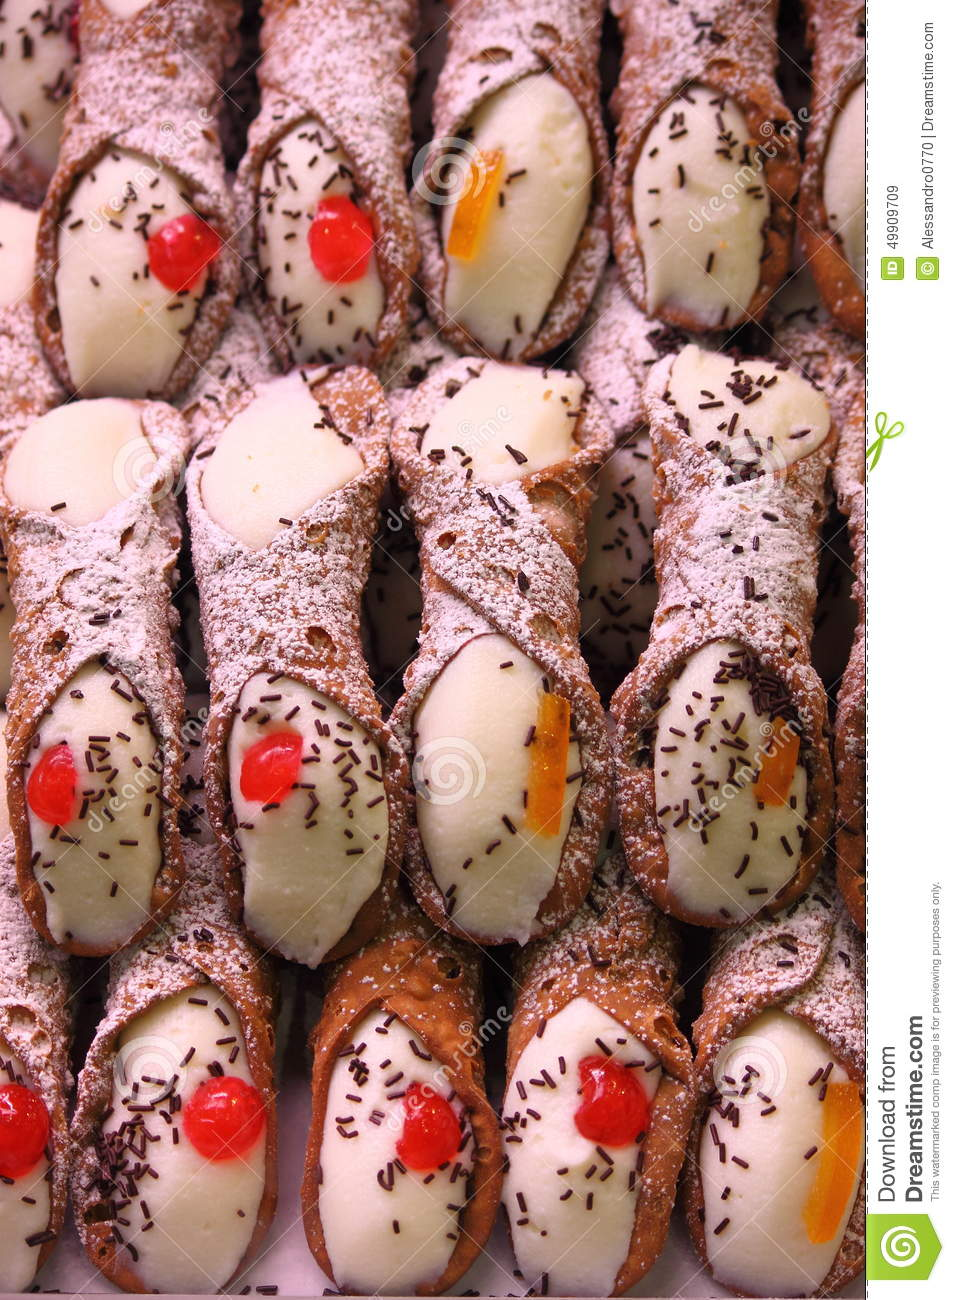 Pile of sicilian cannoli filled with ricotta and chocolate chips.